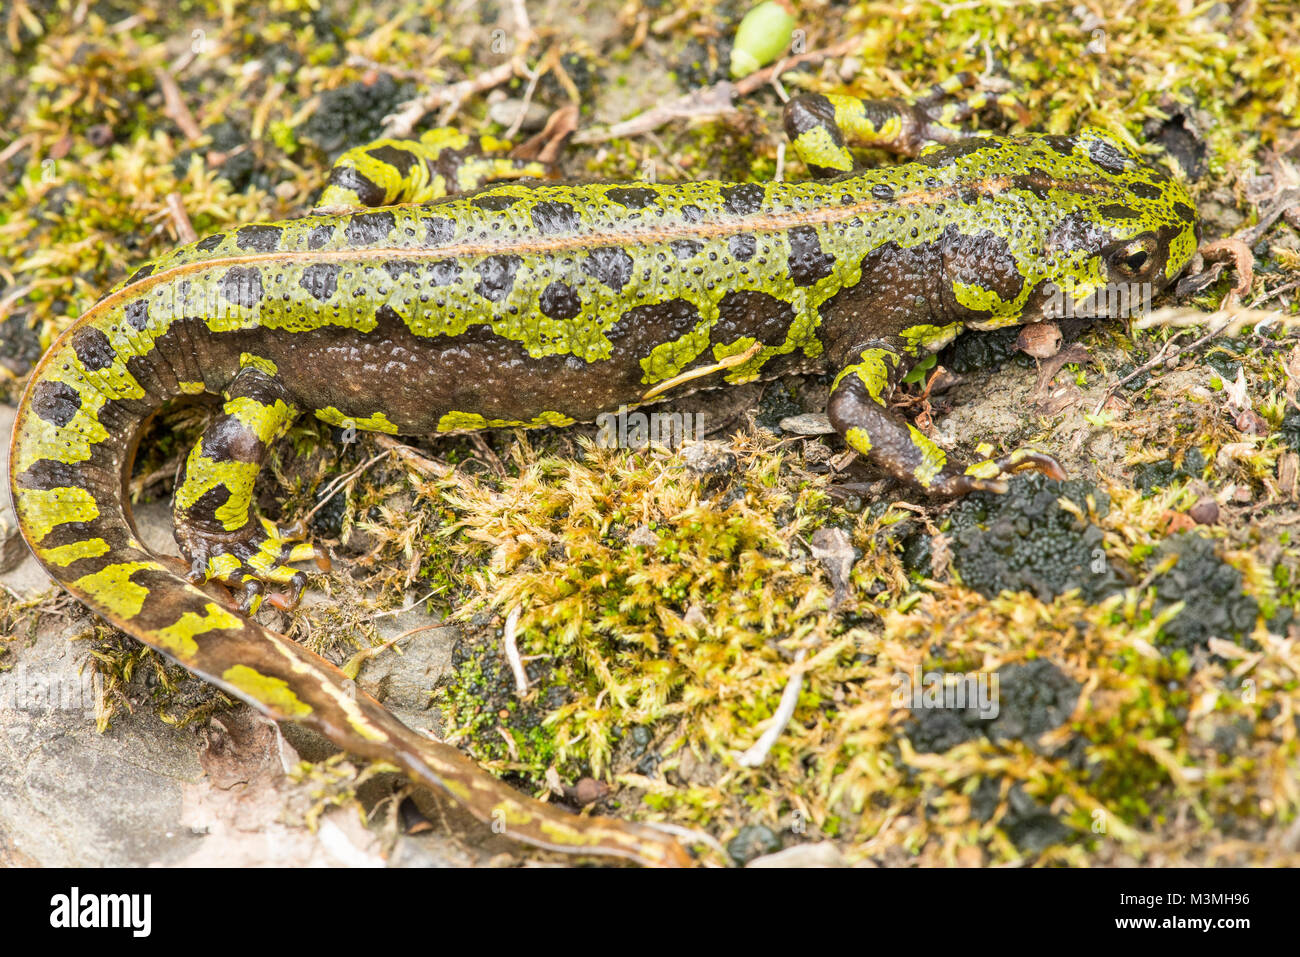 Marbled newt - a large, beautiful species found at higher altitudes in France & northern Spain (Picos de Europa - Stock Image